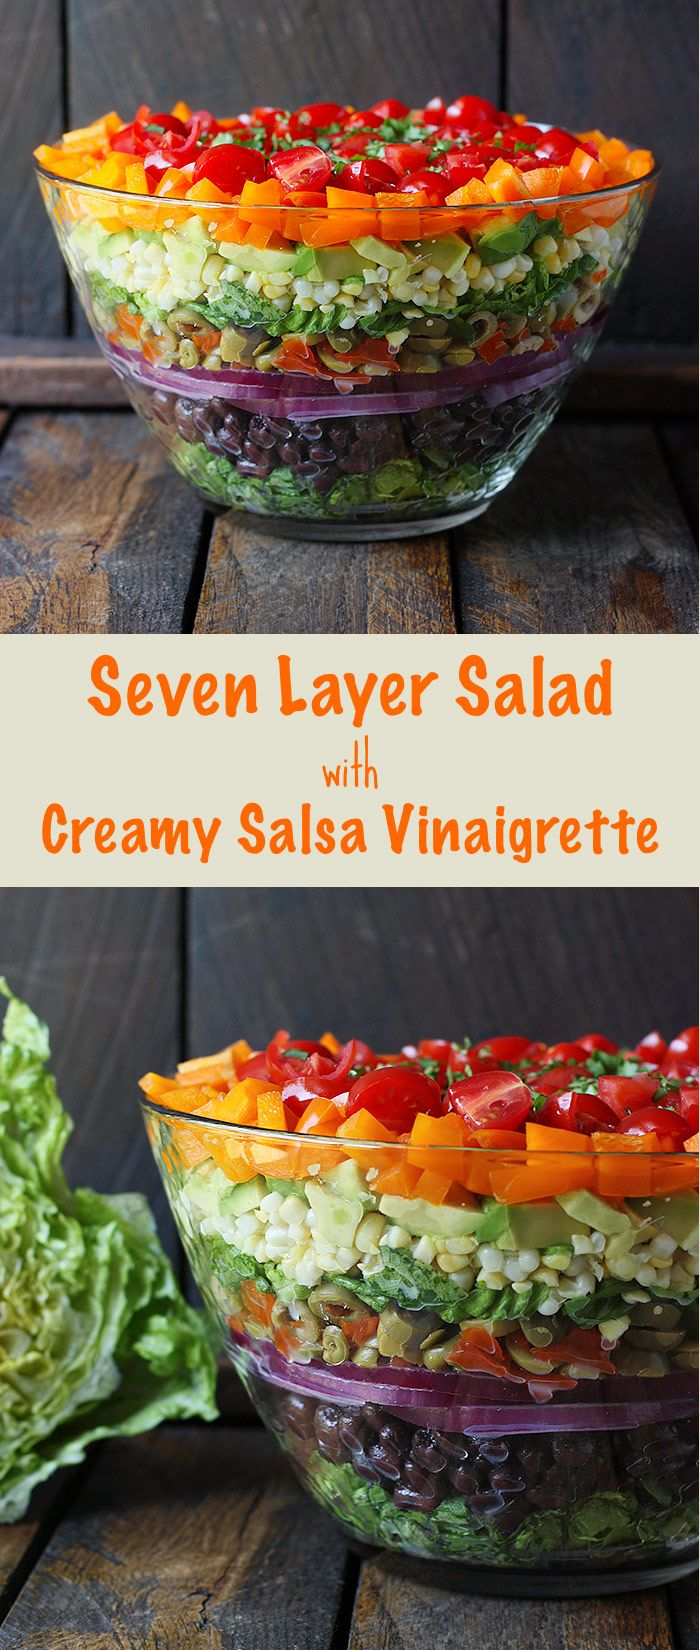 Seven Layer Salad with Creamy Salsa Vinaigrette | SoupAddict.com - this fresh, no gloppy-layers-of-mayo salad is a showstopper on your table (and healthy, too).